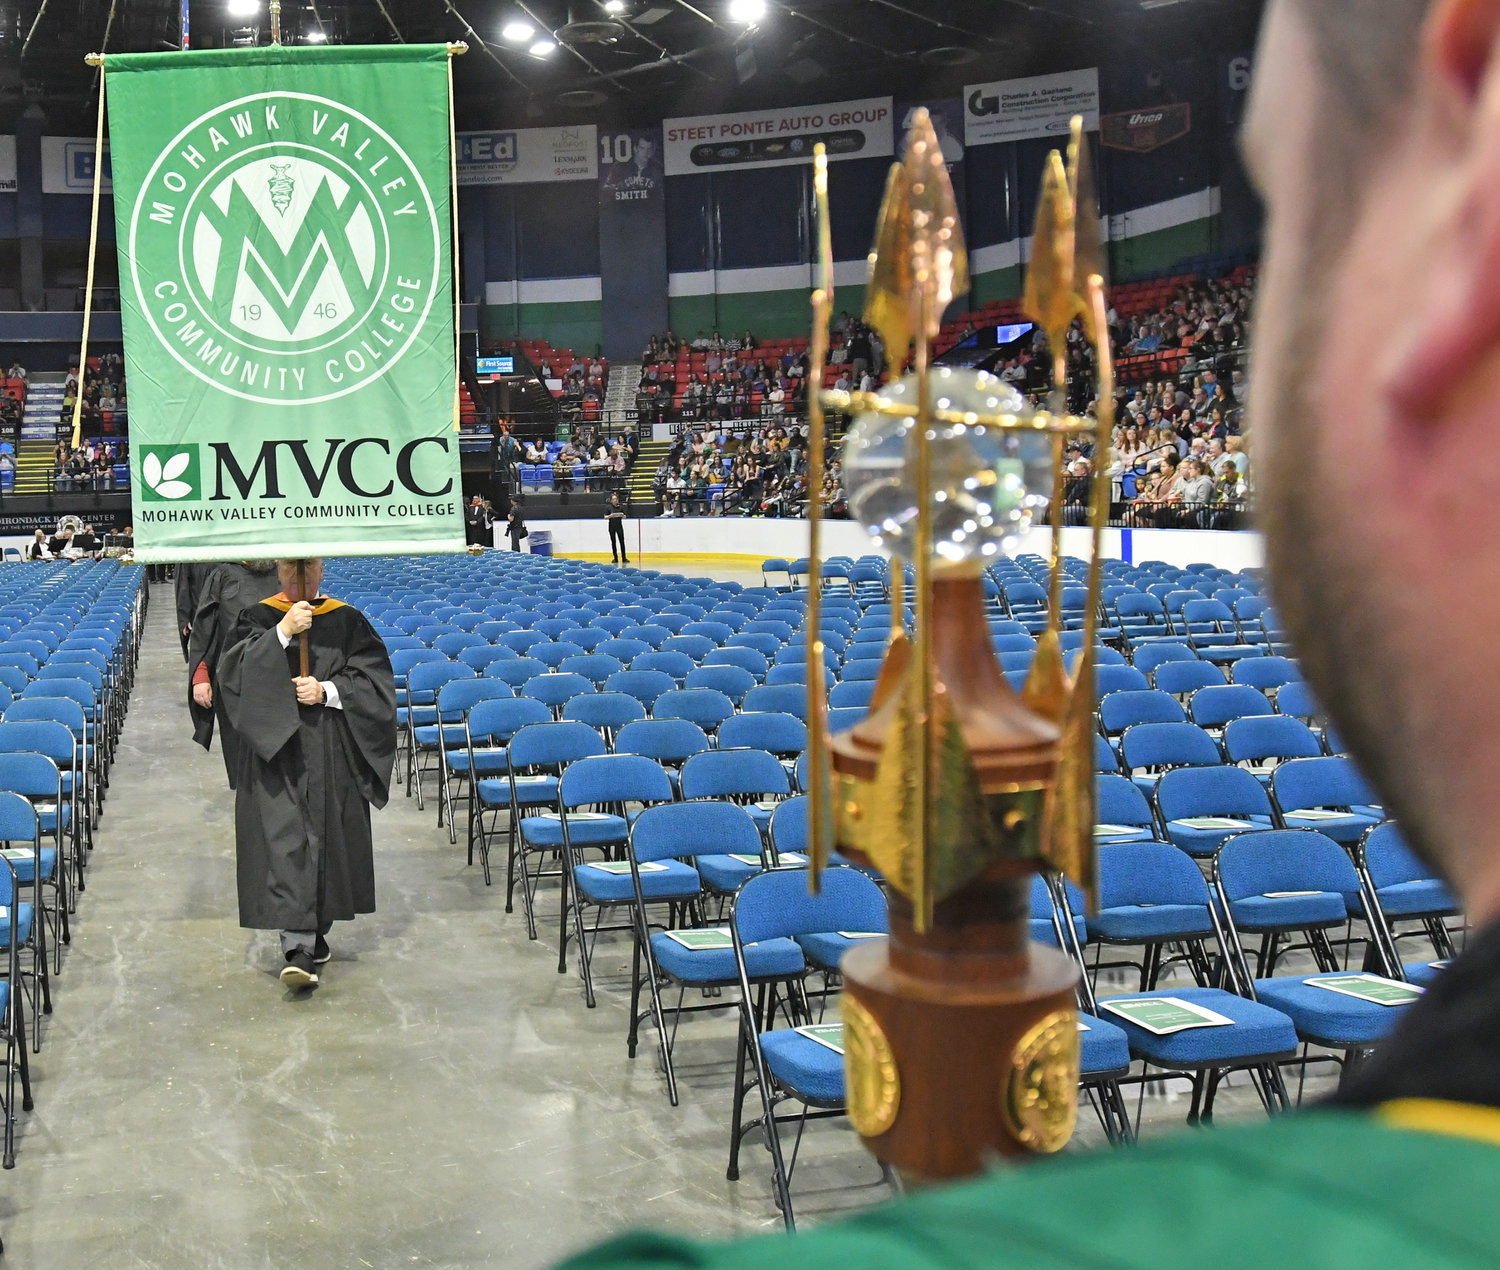 MAKING AN ENTRANCE — The Mohawk Valley Community College banner and mace lead the procession at the start of Mohawk Valley Community College's commencement ceremony on Thursday.